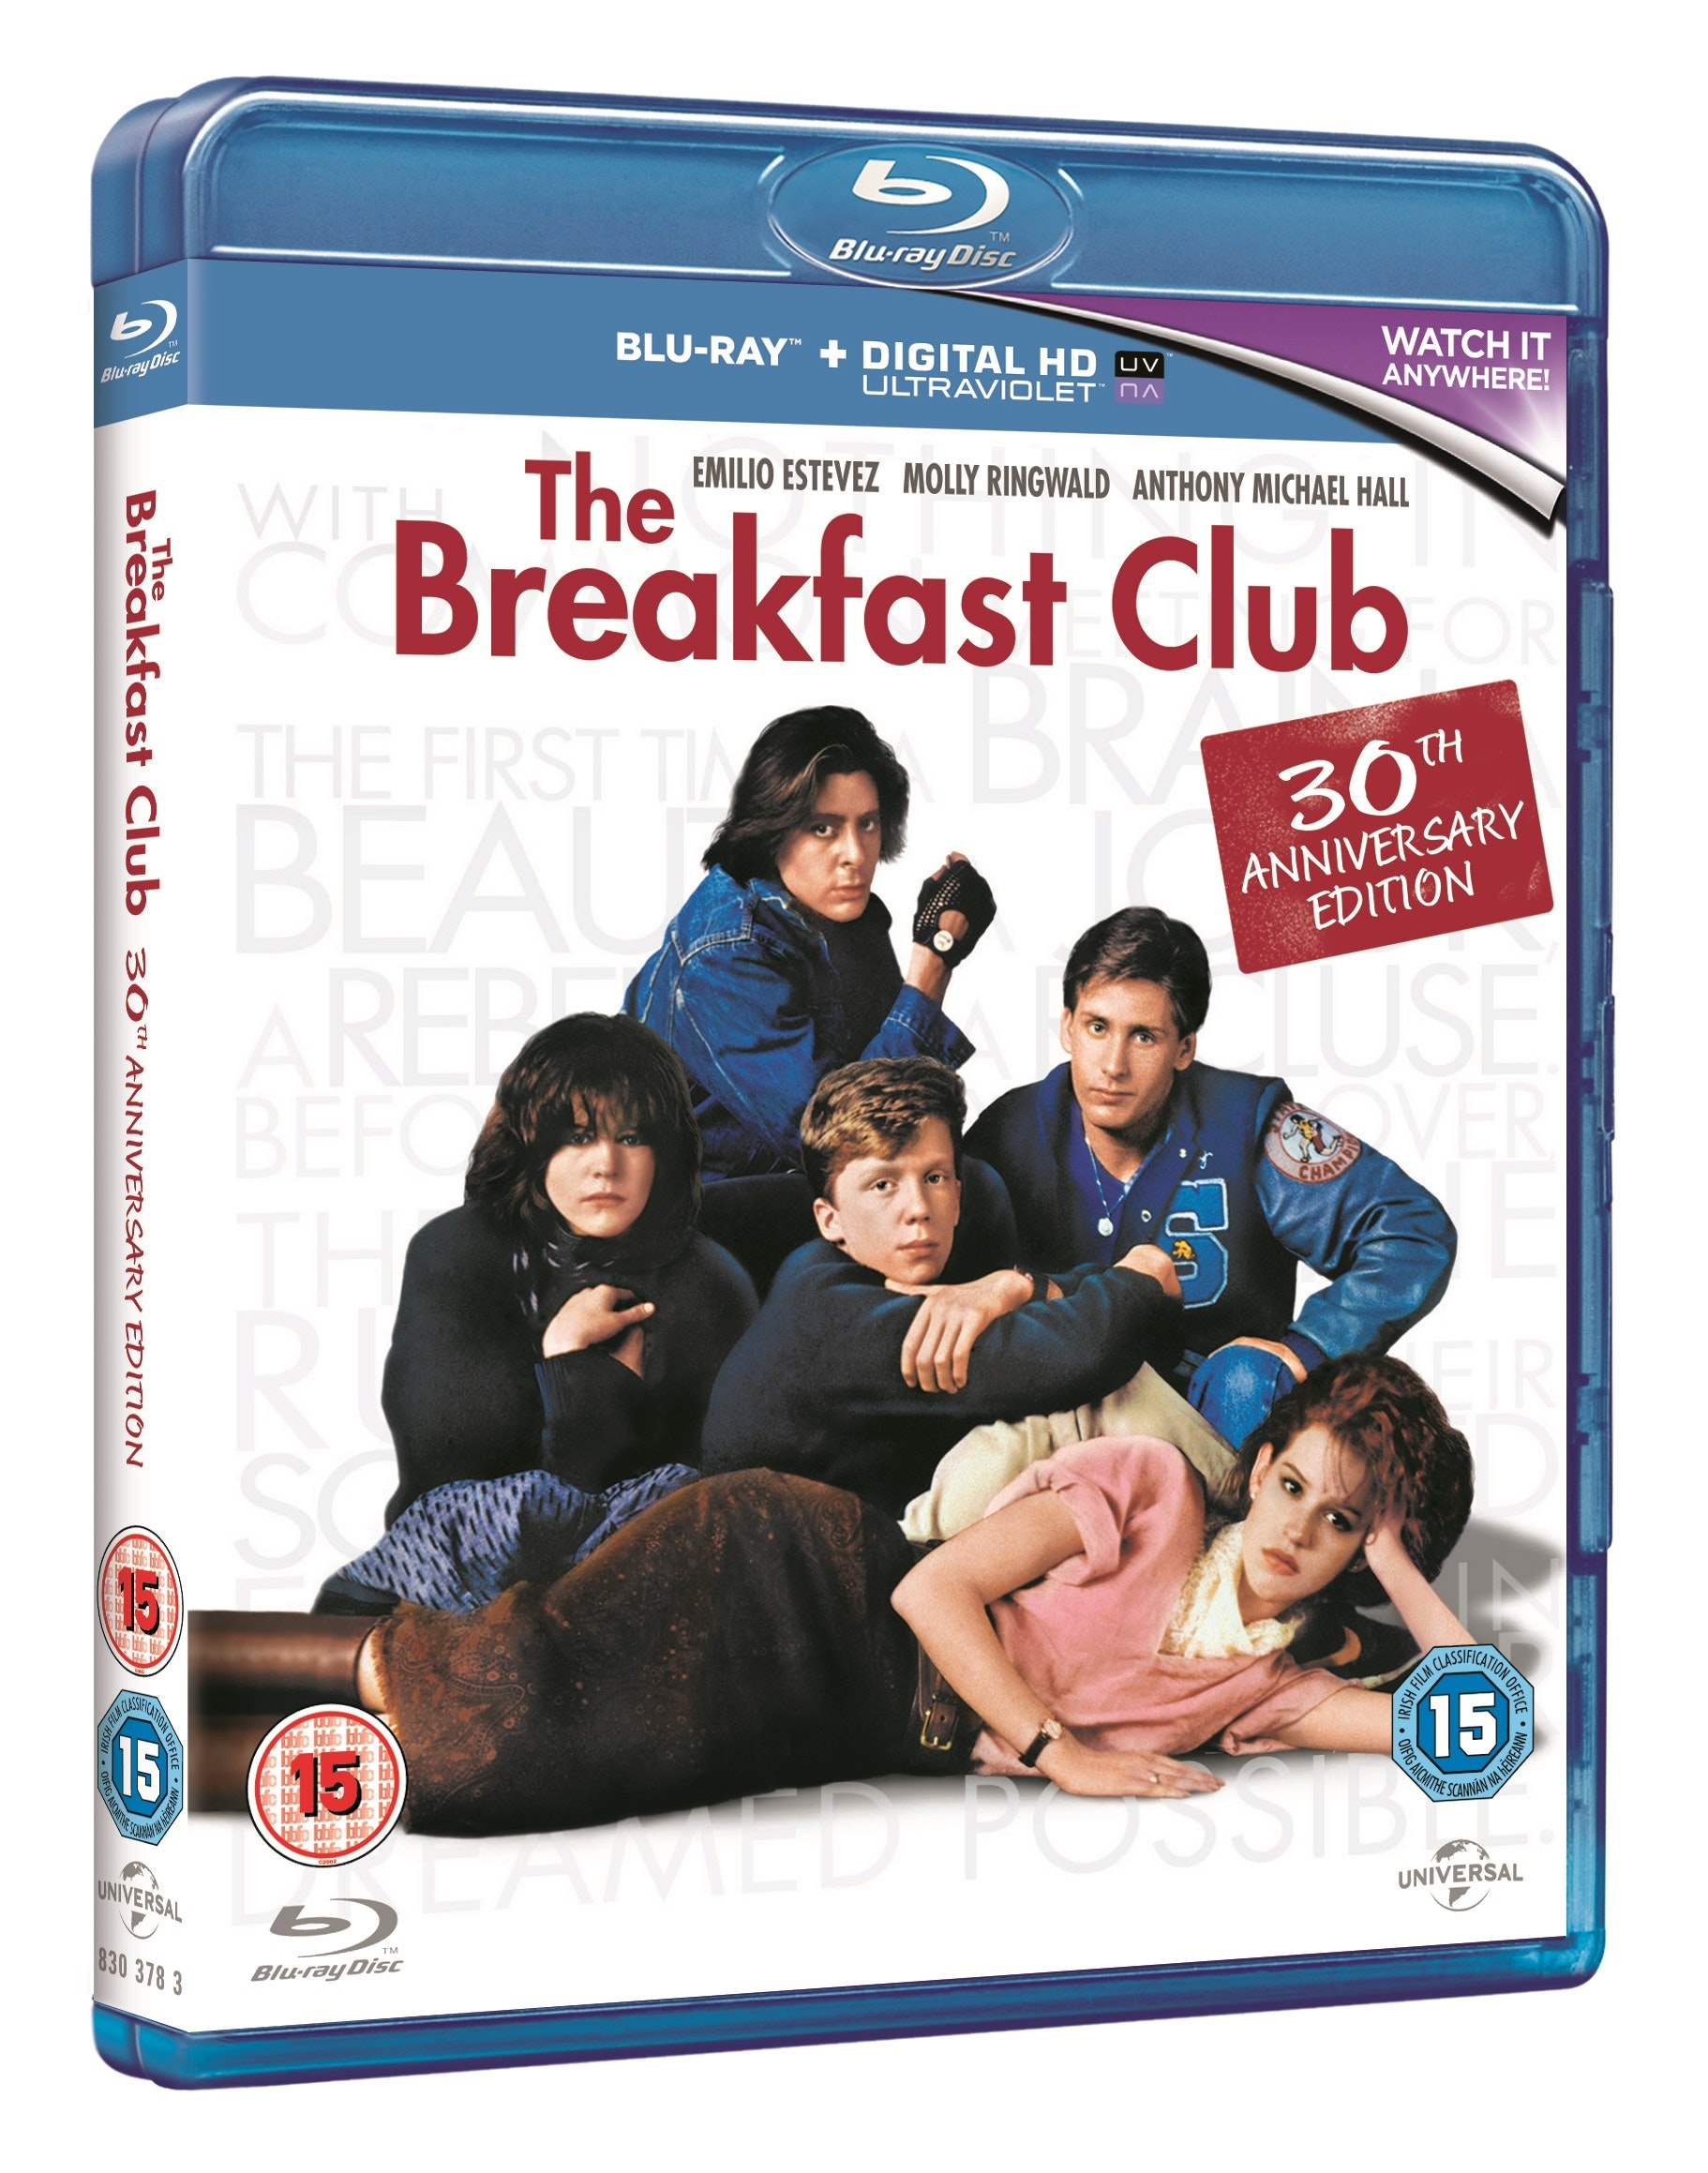 Breakfast club 3d packshot 1